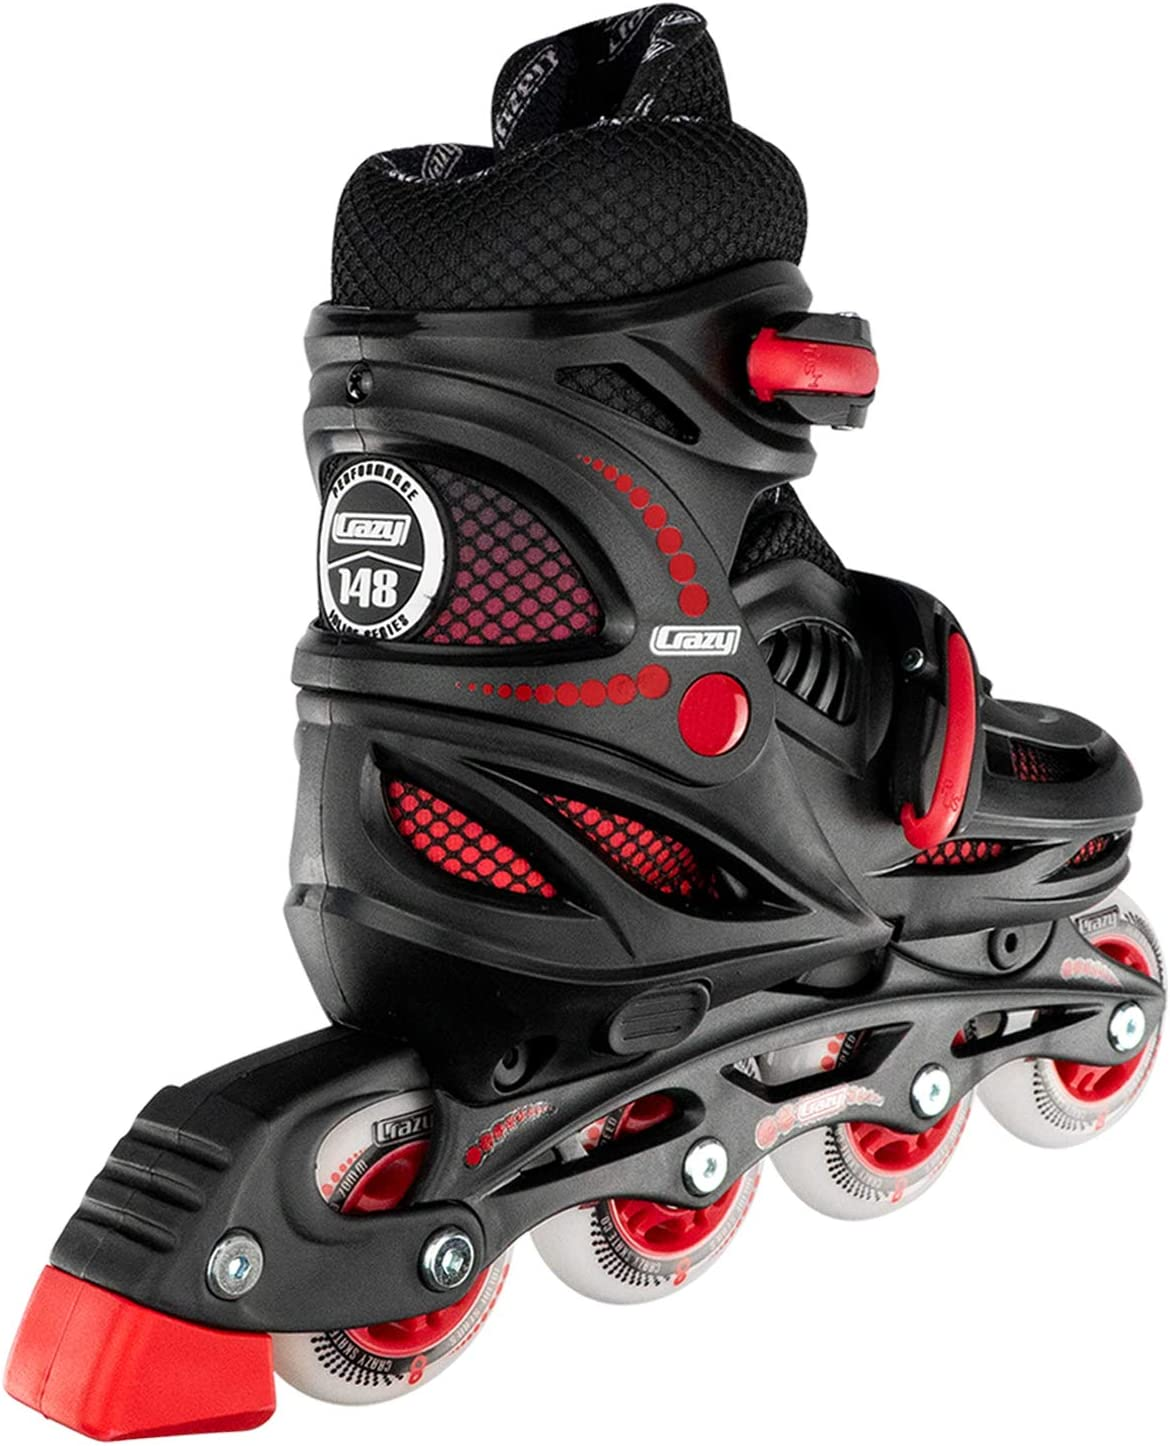 Crazy Skates Adjustable Inline Skates for Boys – Beginner Kids Roller Blades Model 148